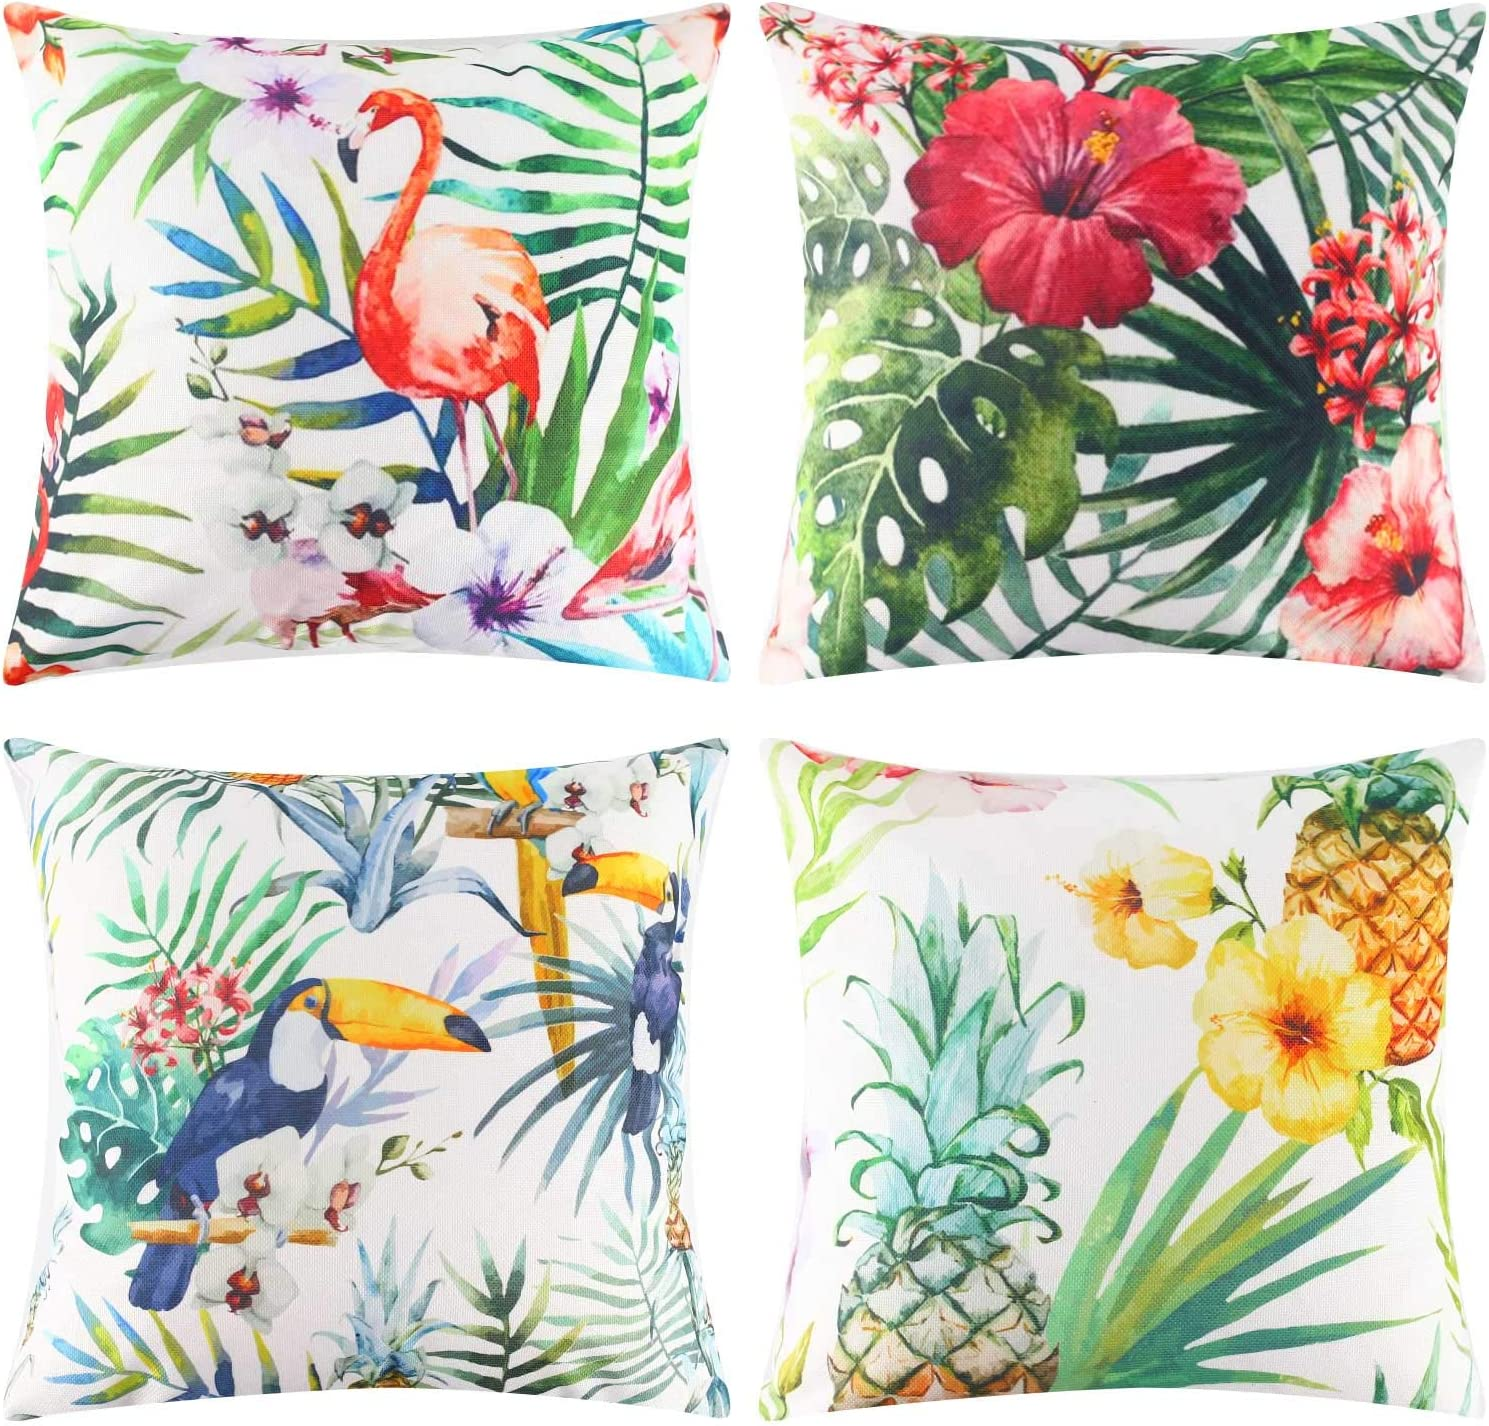 JOHOUSE 4PCS Flamingo Throw Pillow Covers Decorative Tropical Leaves Toucan Parrot Pattern Cushion Covers for Patio Sofa Couch Summer Holiday Home Decoration,18 X 18 Inch